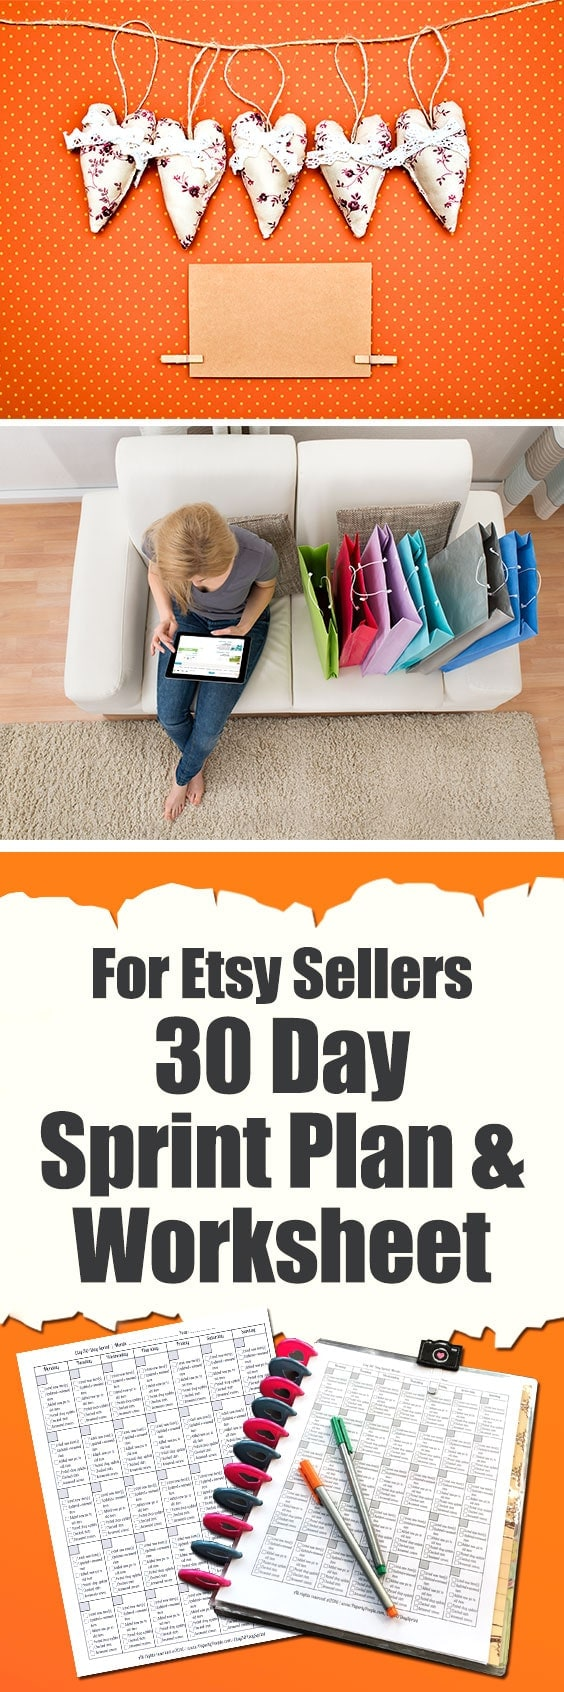 For Etsy Sellers... 30 Day Sprint Plan & Worksheet | For Etsy sellers, listings are king. Whether you are a power lister or if you only have a few items in your shop, you need to be constantly massaging your listings to make them better and more visible in Etsy search.